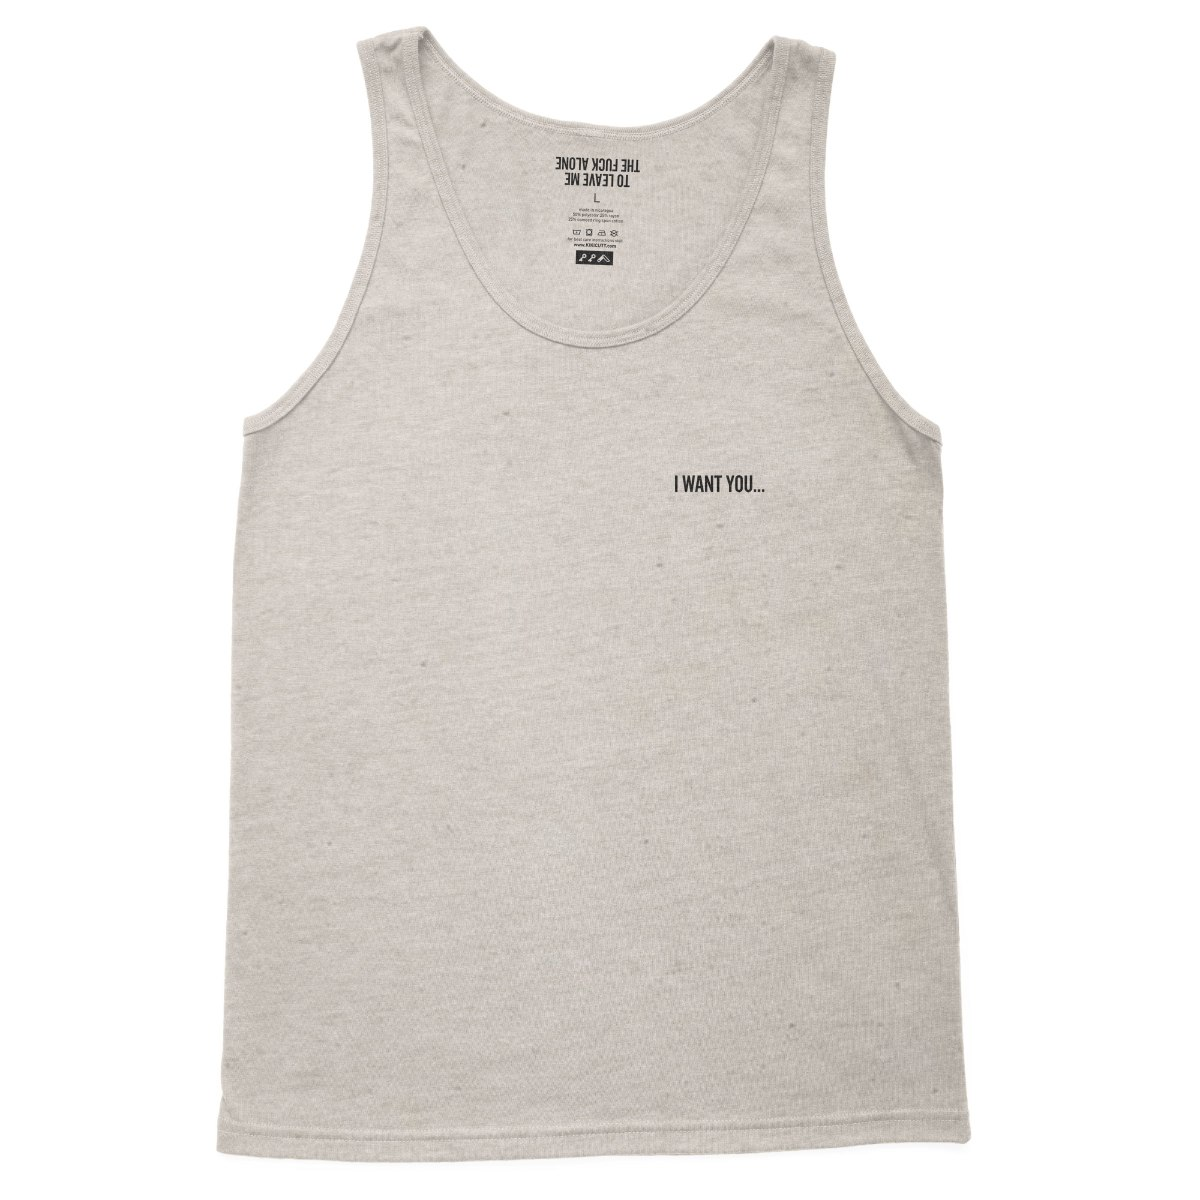 """""""I WANT YOU... TO LEAVE ME THE FUCK ALONE"""" introvert tank top in oatmeal"""